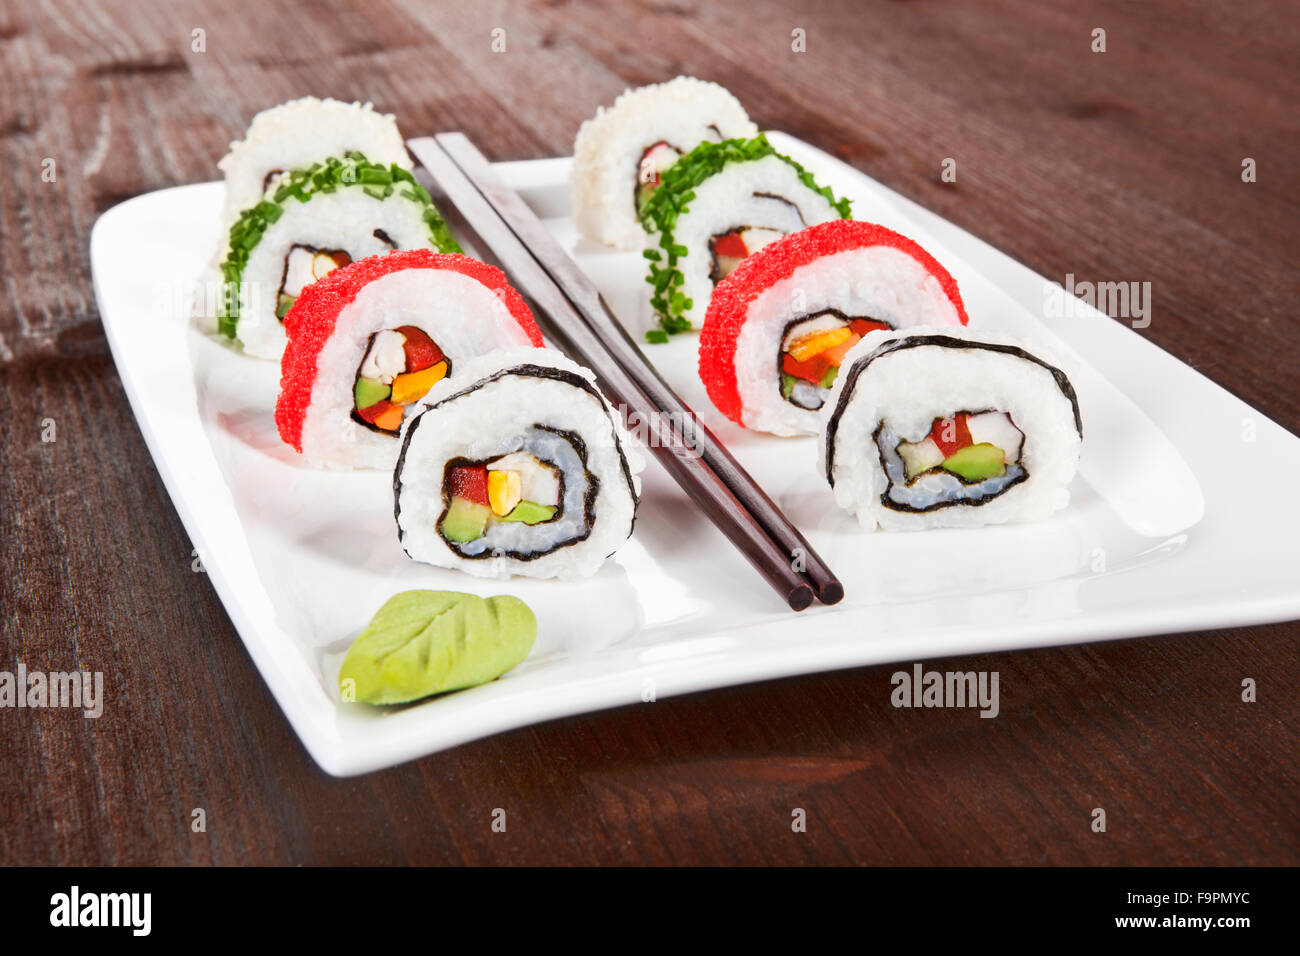 makizushi sushi rollen auf wei en teller stockfoto bild 92083136 alamy. Black Bedroom Furniture Sets. Home Design Ideas